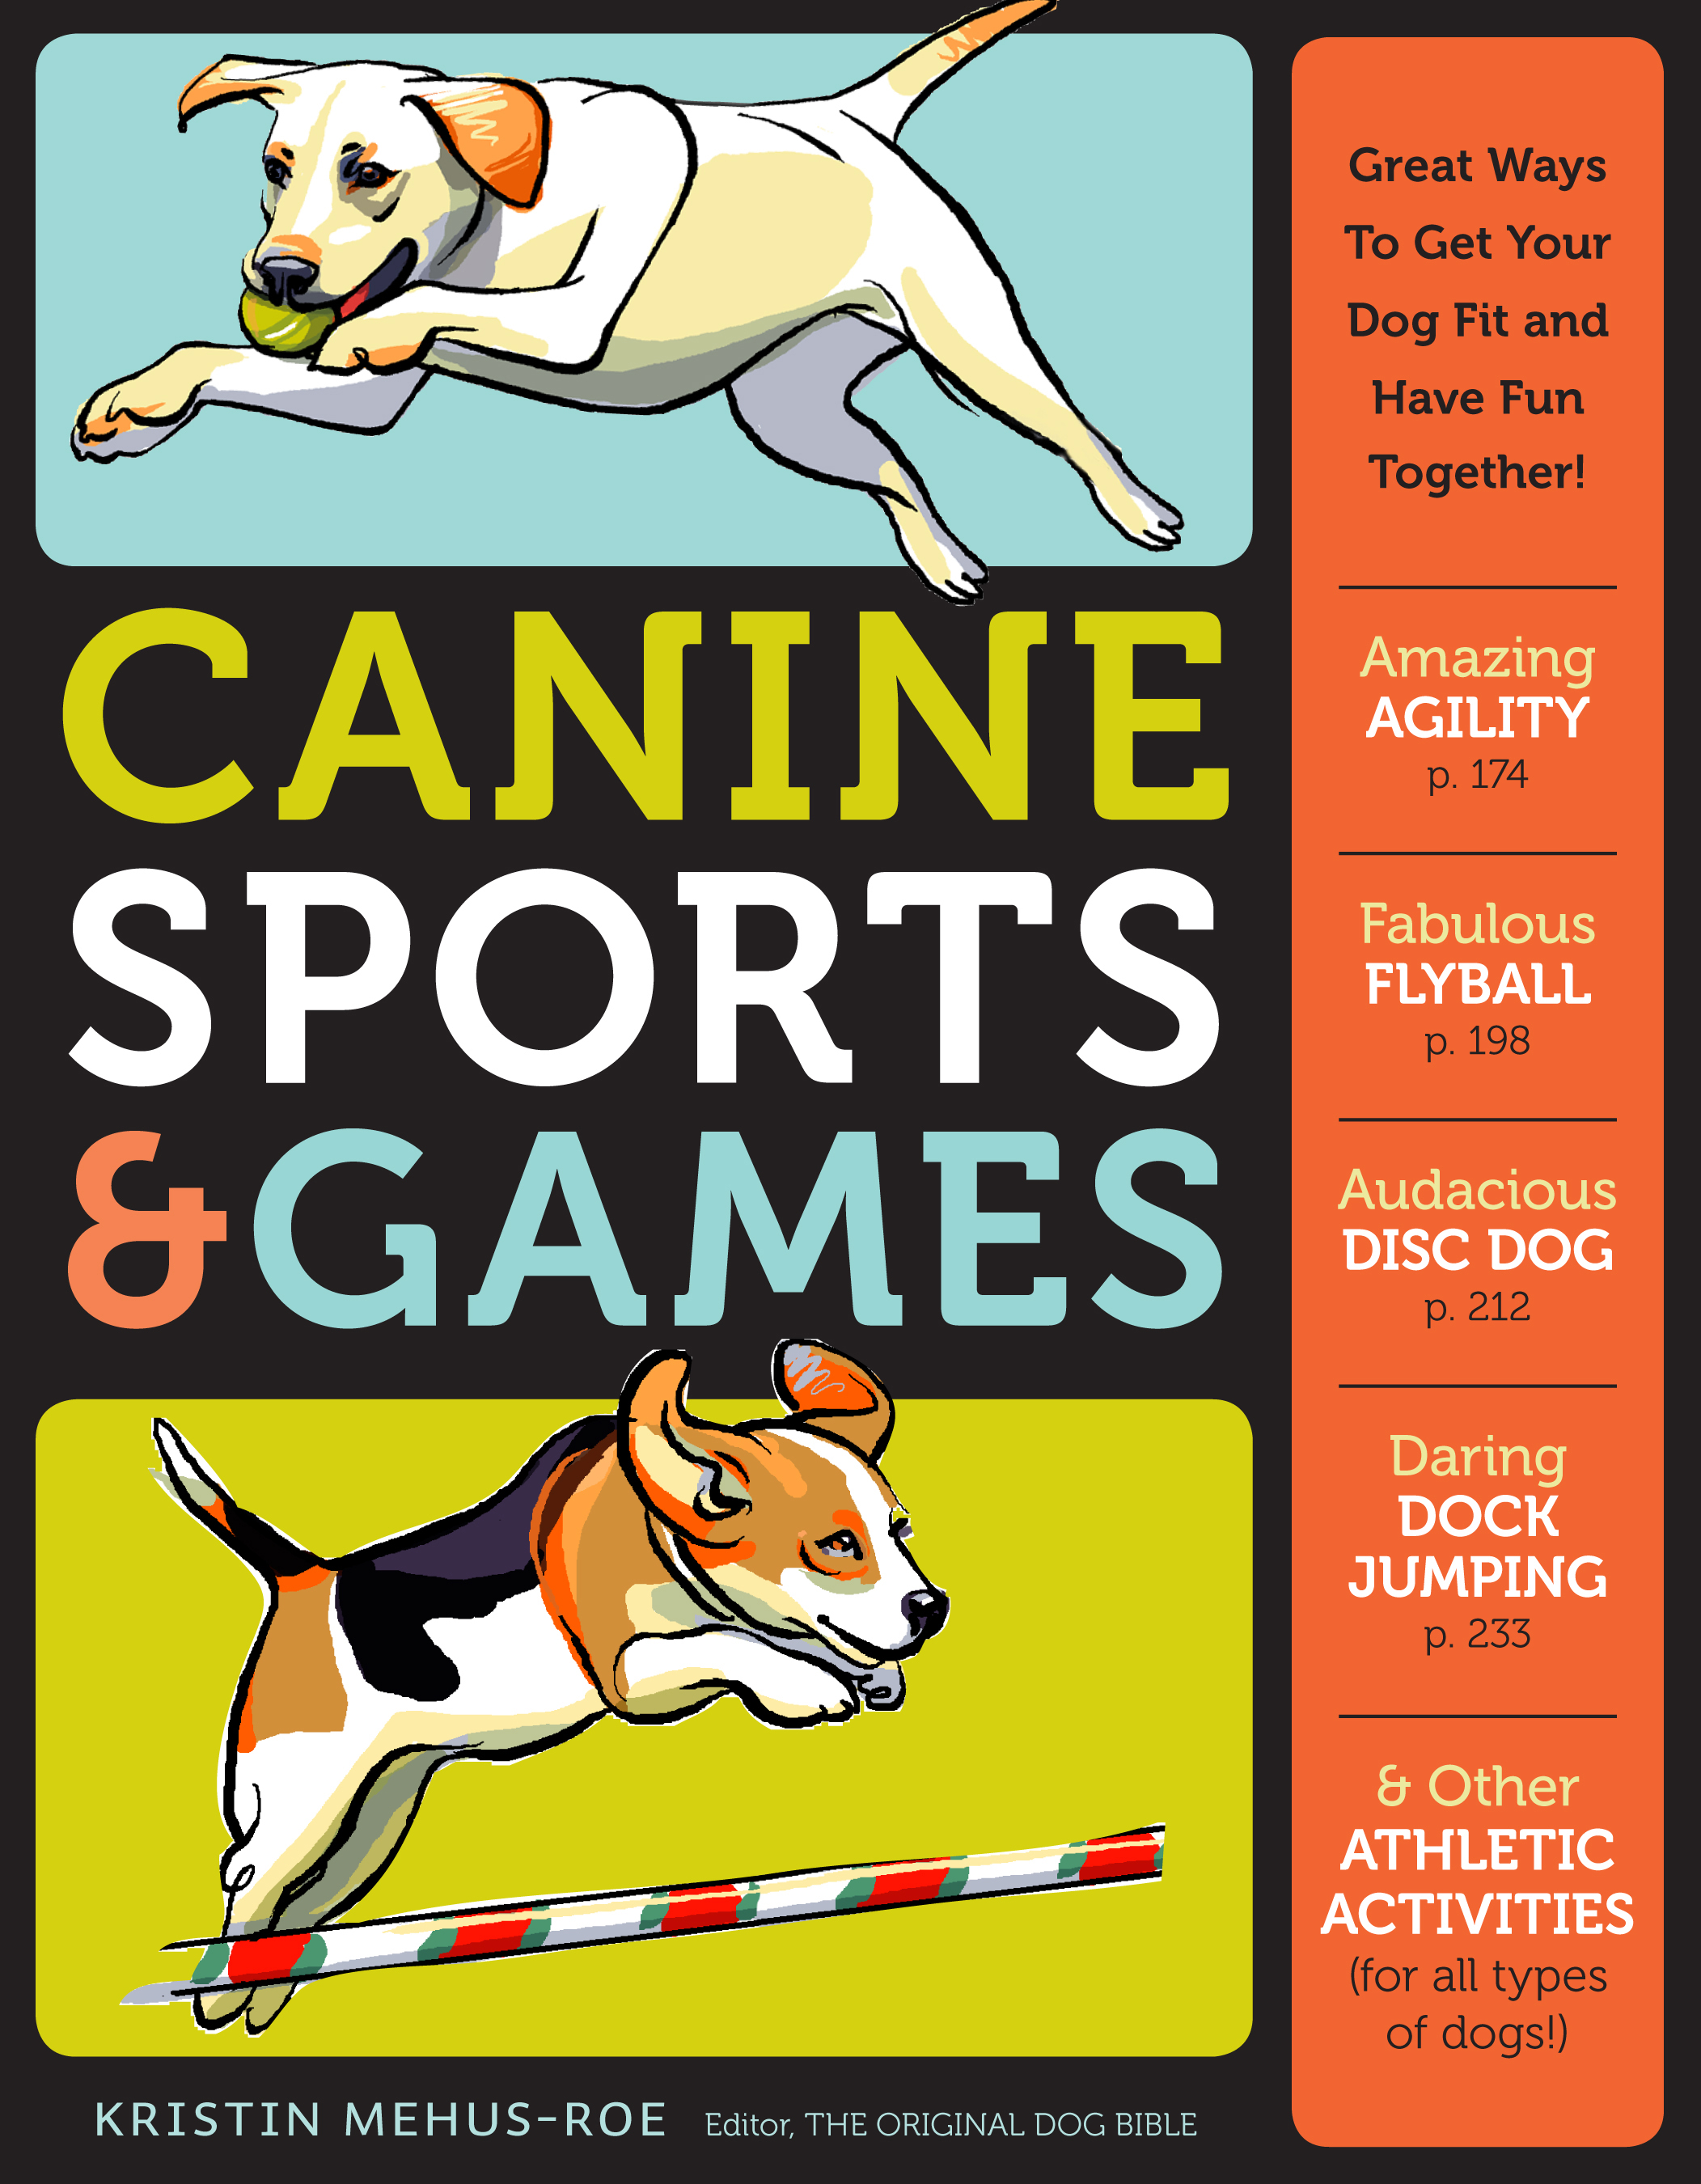 Canine Sports & Games Great Ways to Get Your Dog Fit and Have Fun Together! - Kristin Mehus-Roe